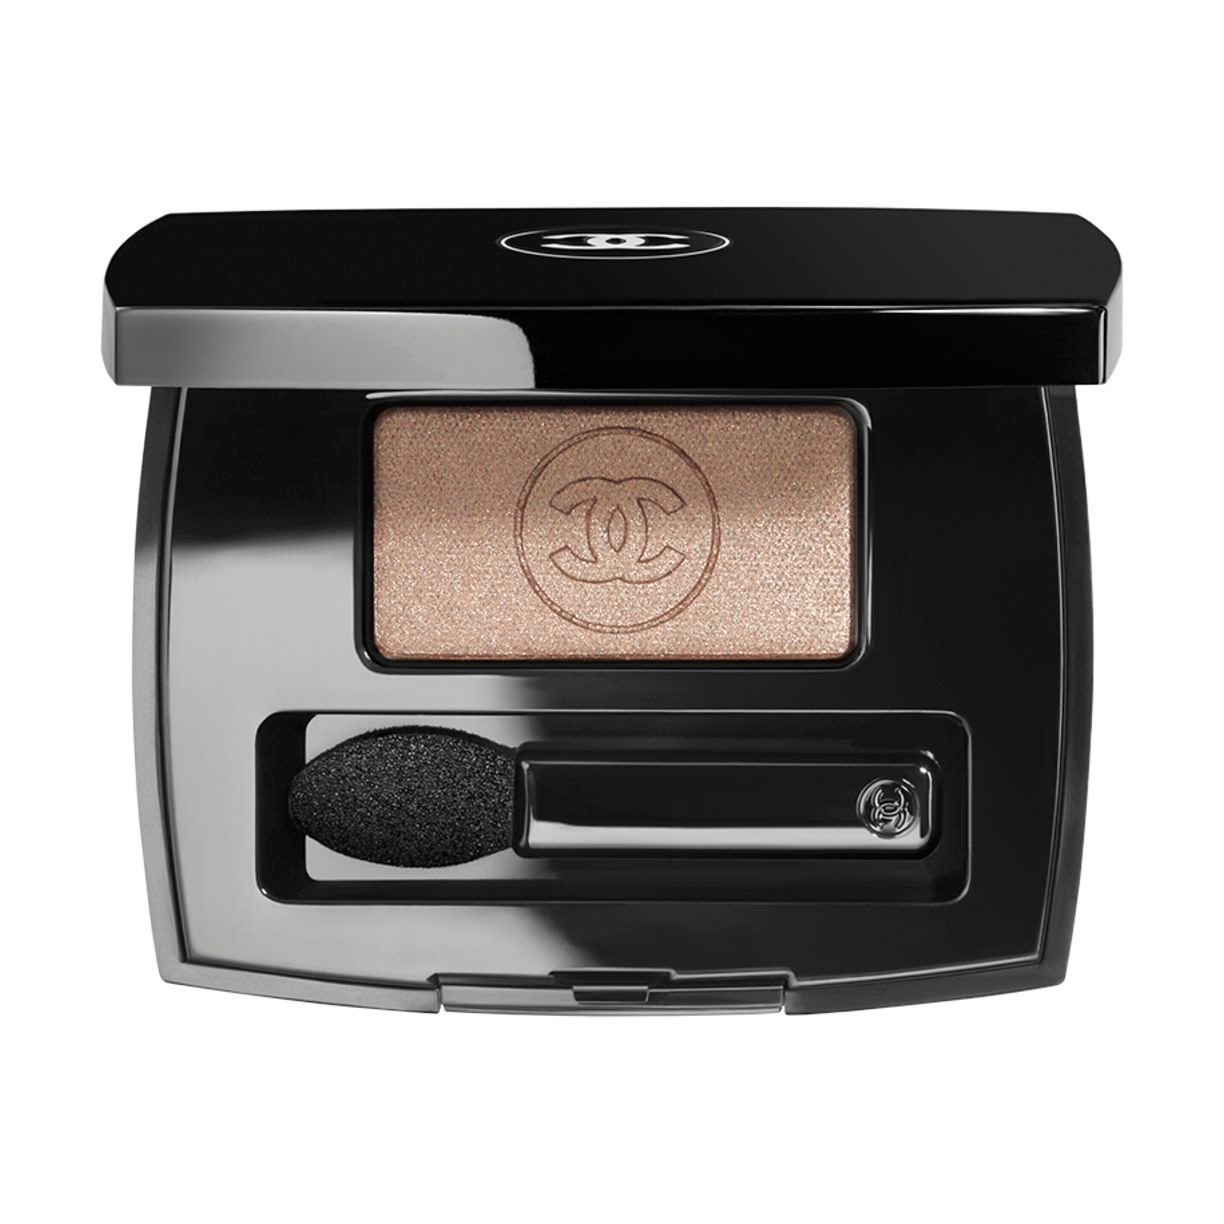 OMBRE ESSENTIELLE SOFT TOUCH EYESHADOW 93 - COMPLICE